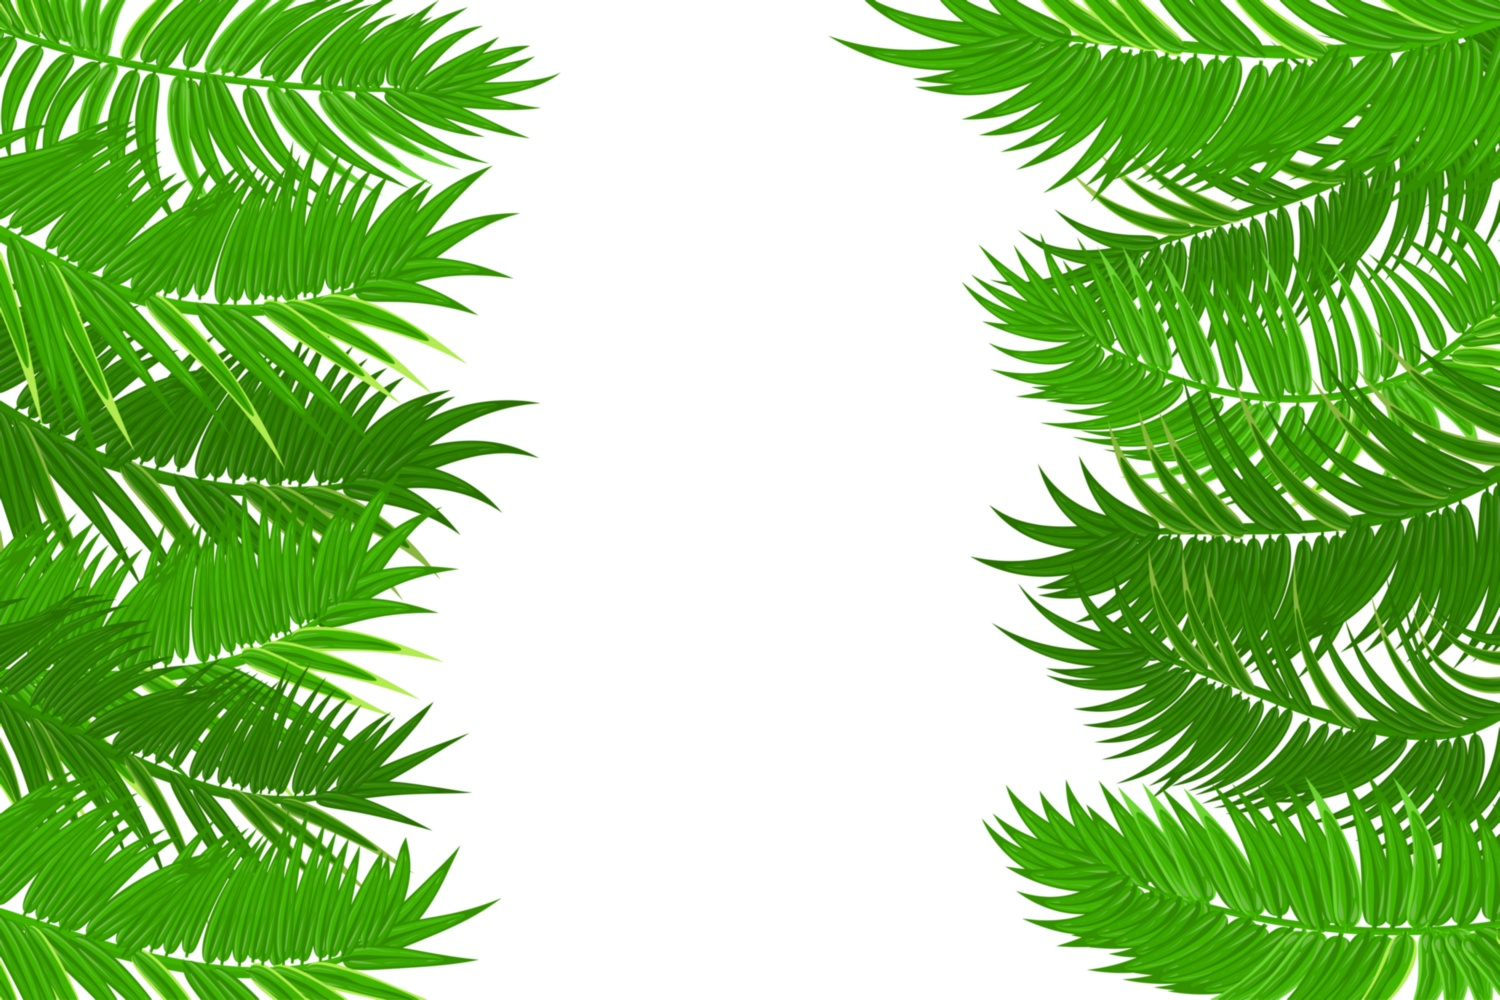 Download Free Green Palm Leaves Frame Banner Isolated Graphic By Kapitosh for Cricut Explore, Silhouette and other cutting machines.